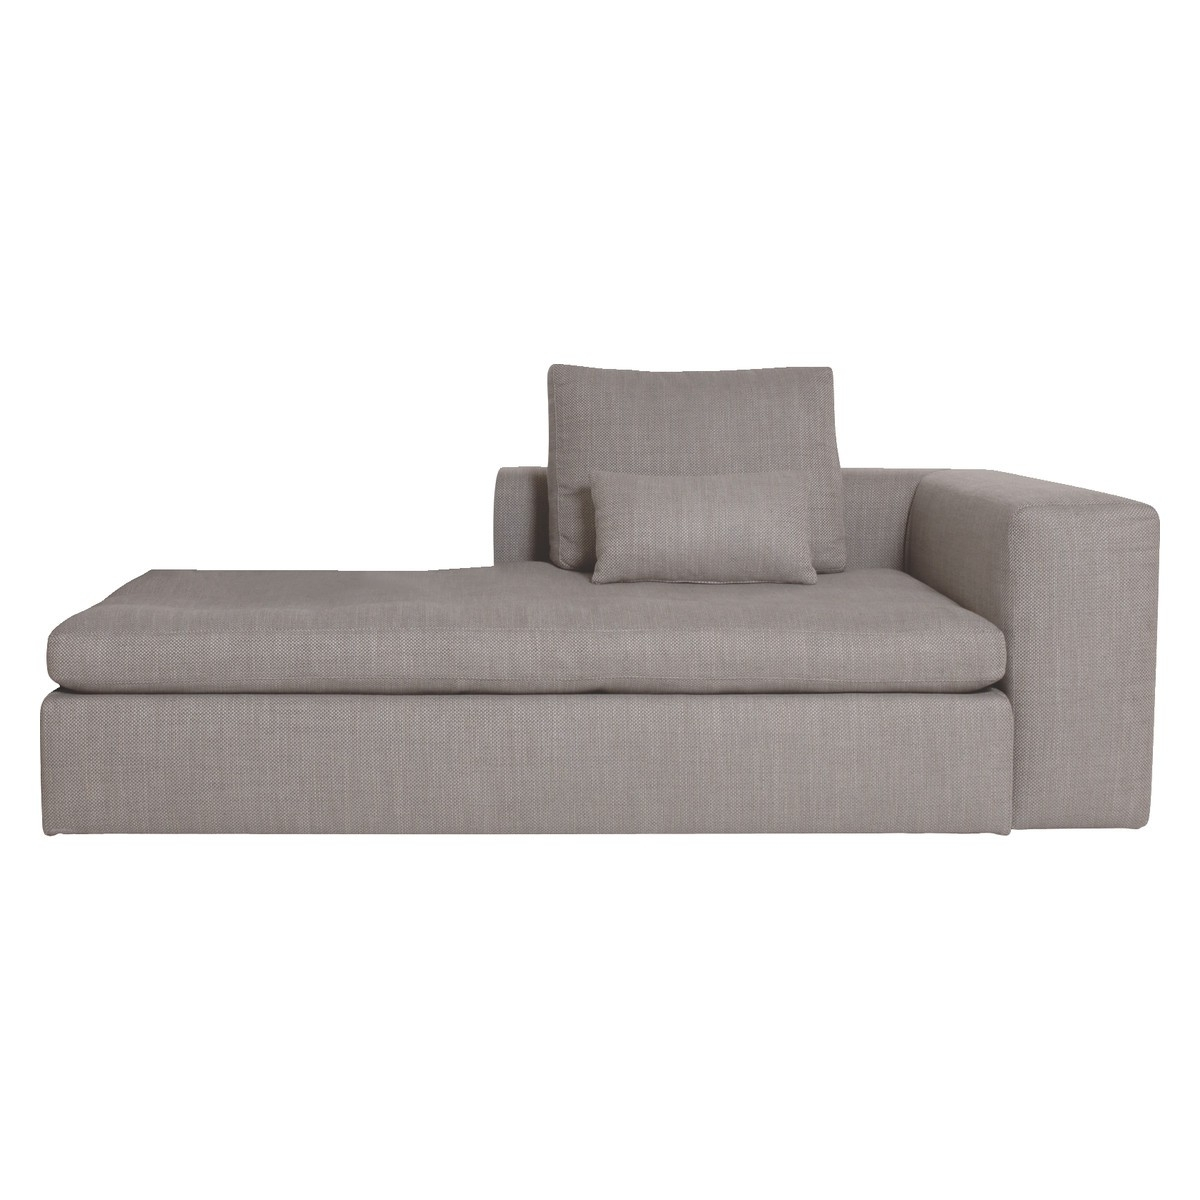 Sofas: Classic Meets Contemporary Chaise Sofa Bed For Ideal Living Pertaining To Well Known Chaise Beds (View 6 of 15)